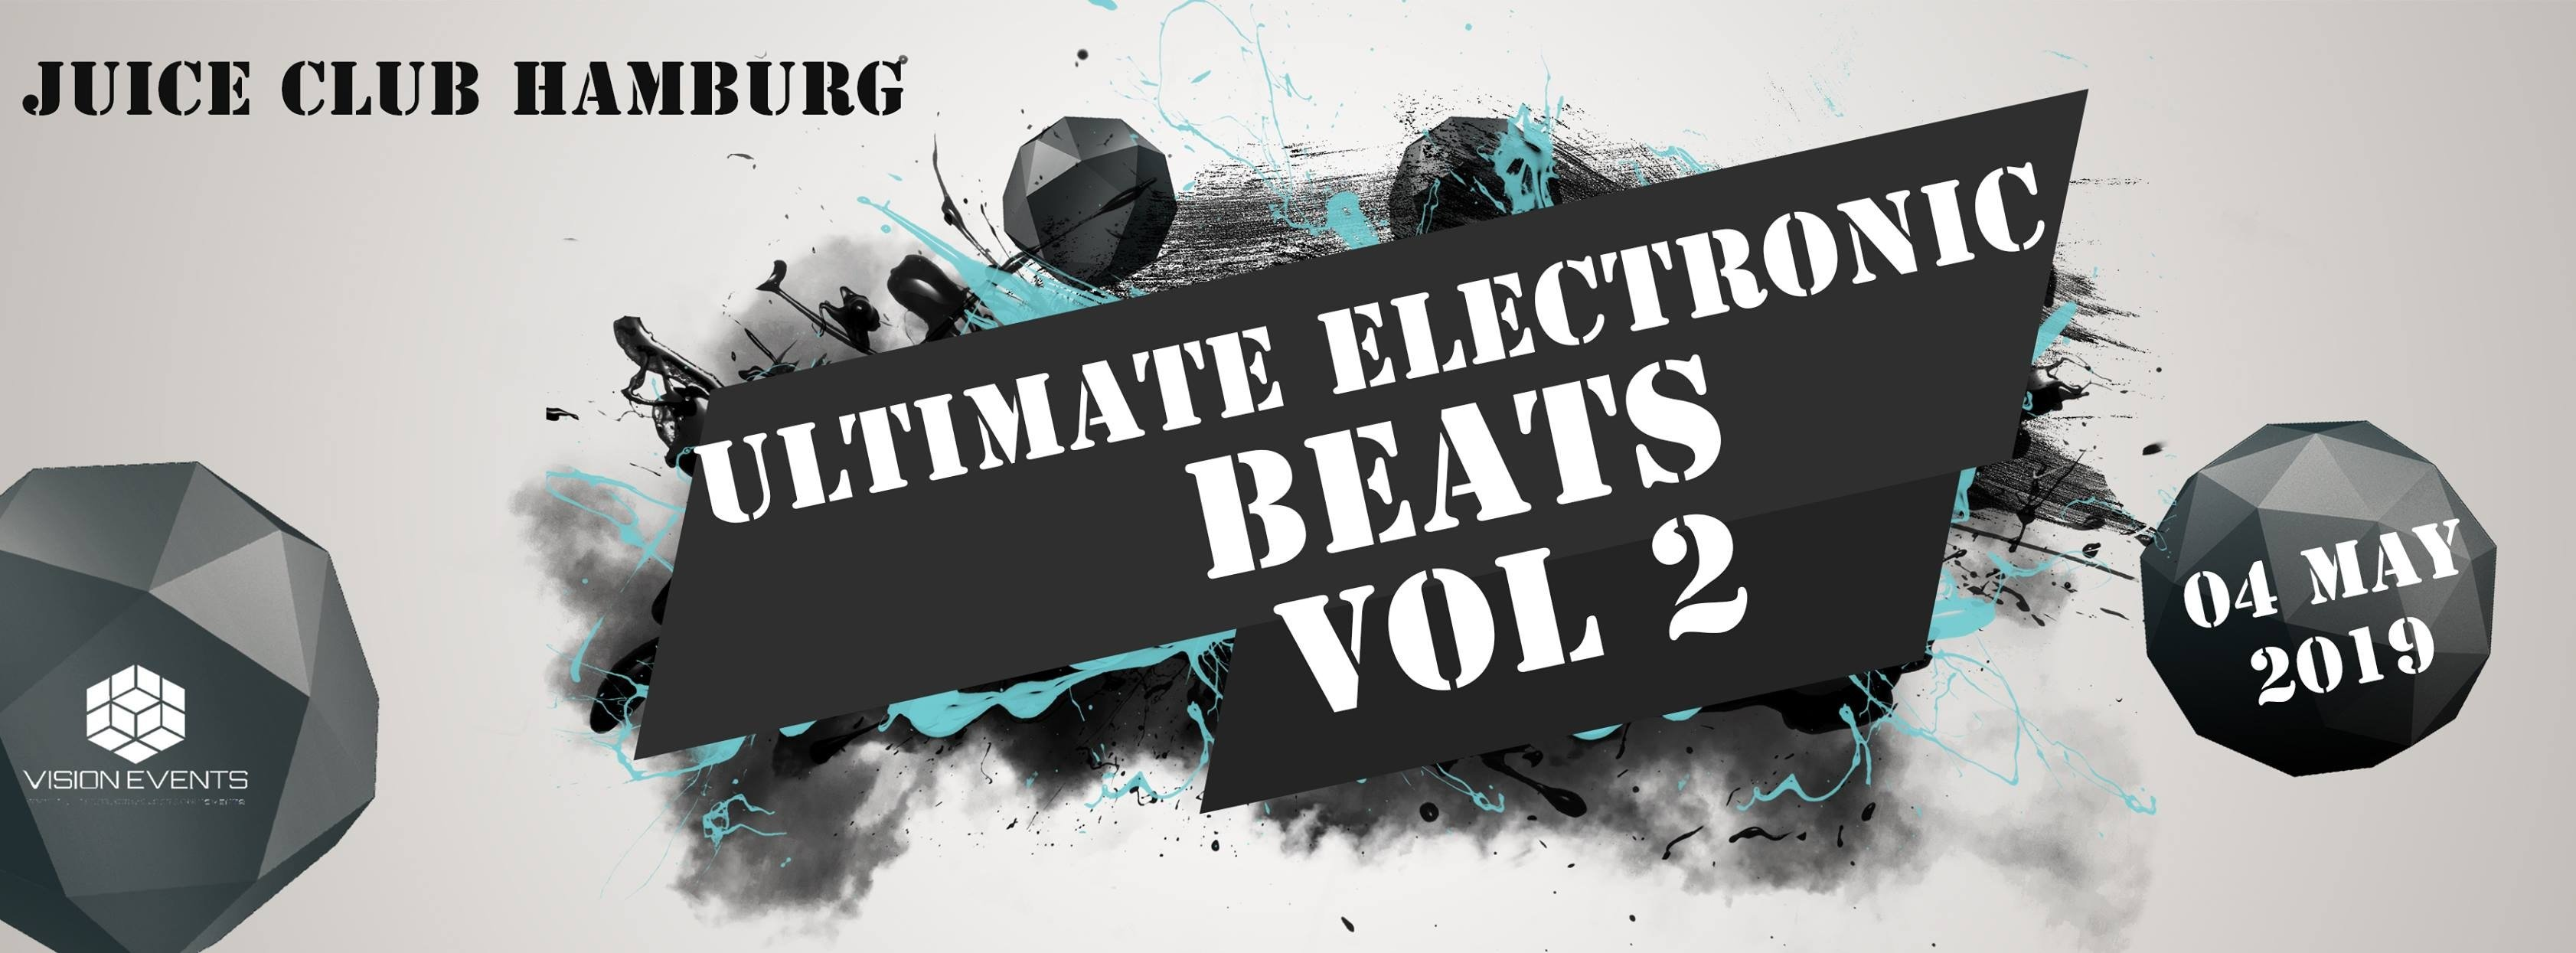 Ultimate Electronic Beats Vol 2